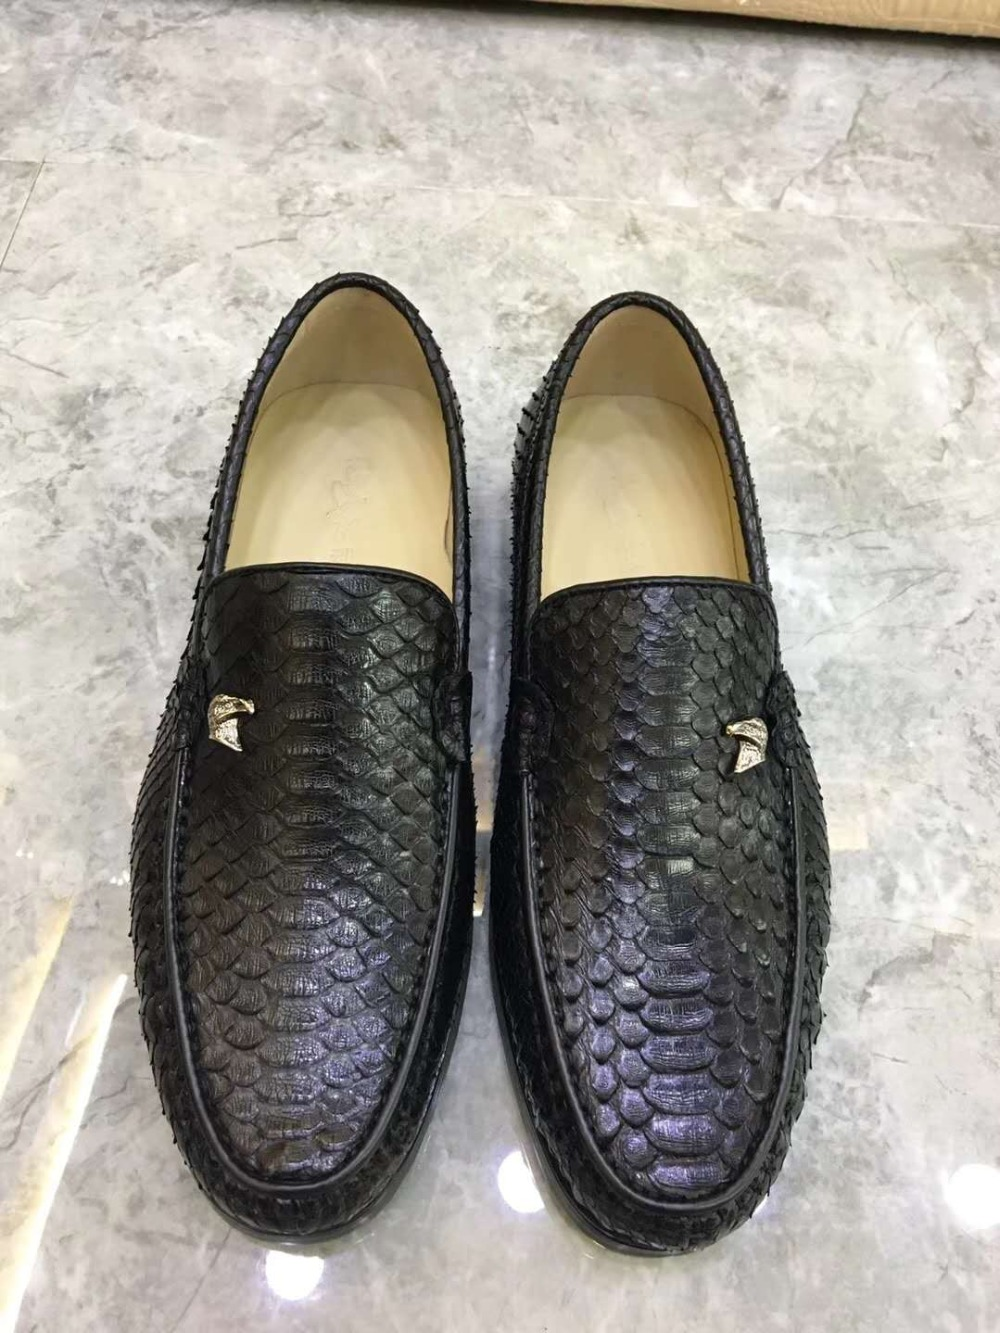 Fashion Style 100% Genuine Real Crocodile Belly Skin Men Shoe Durable Solid Crocodile Skin Men Dress Business Shoe Black Color Free Ship Sophisticated Technologies Men's Shoes